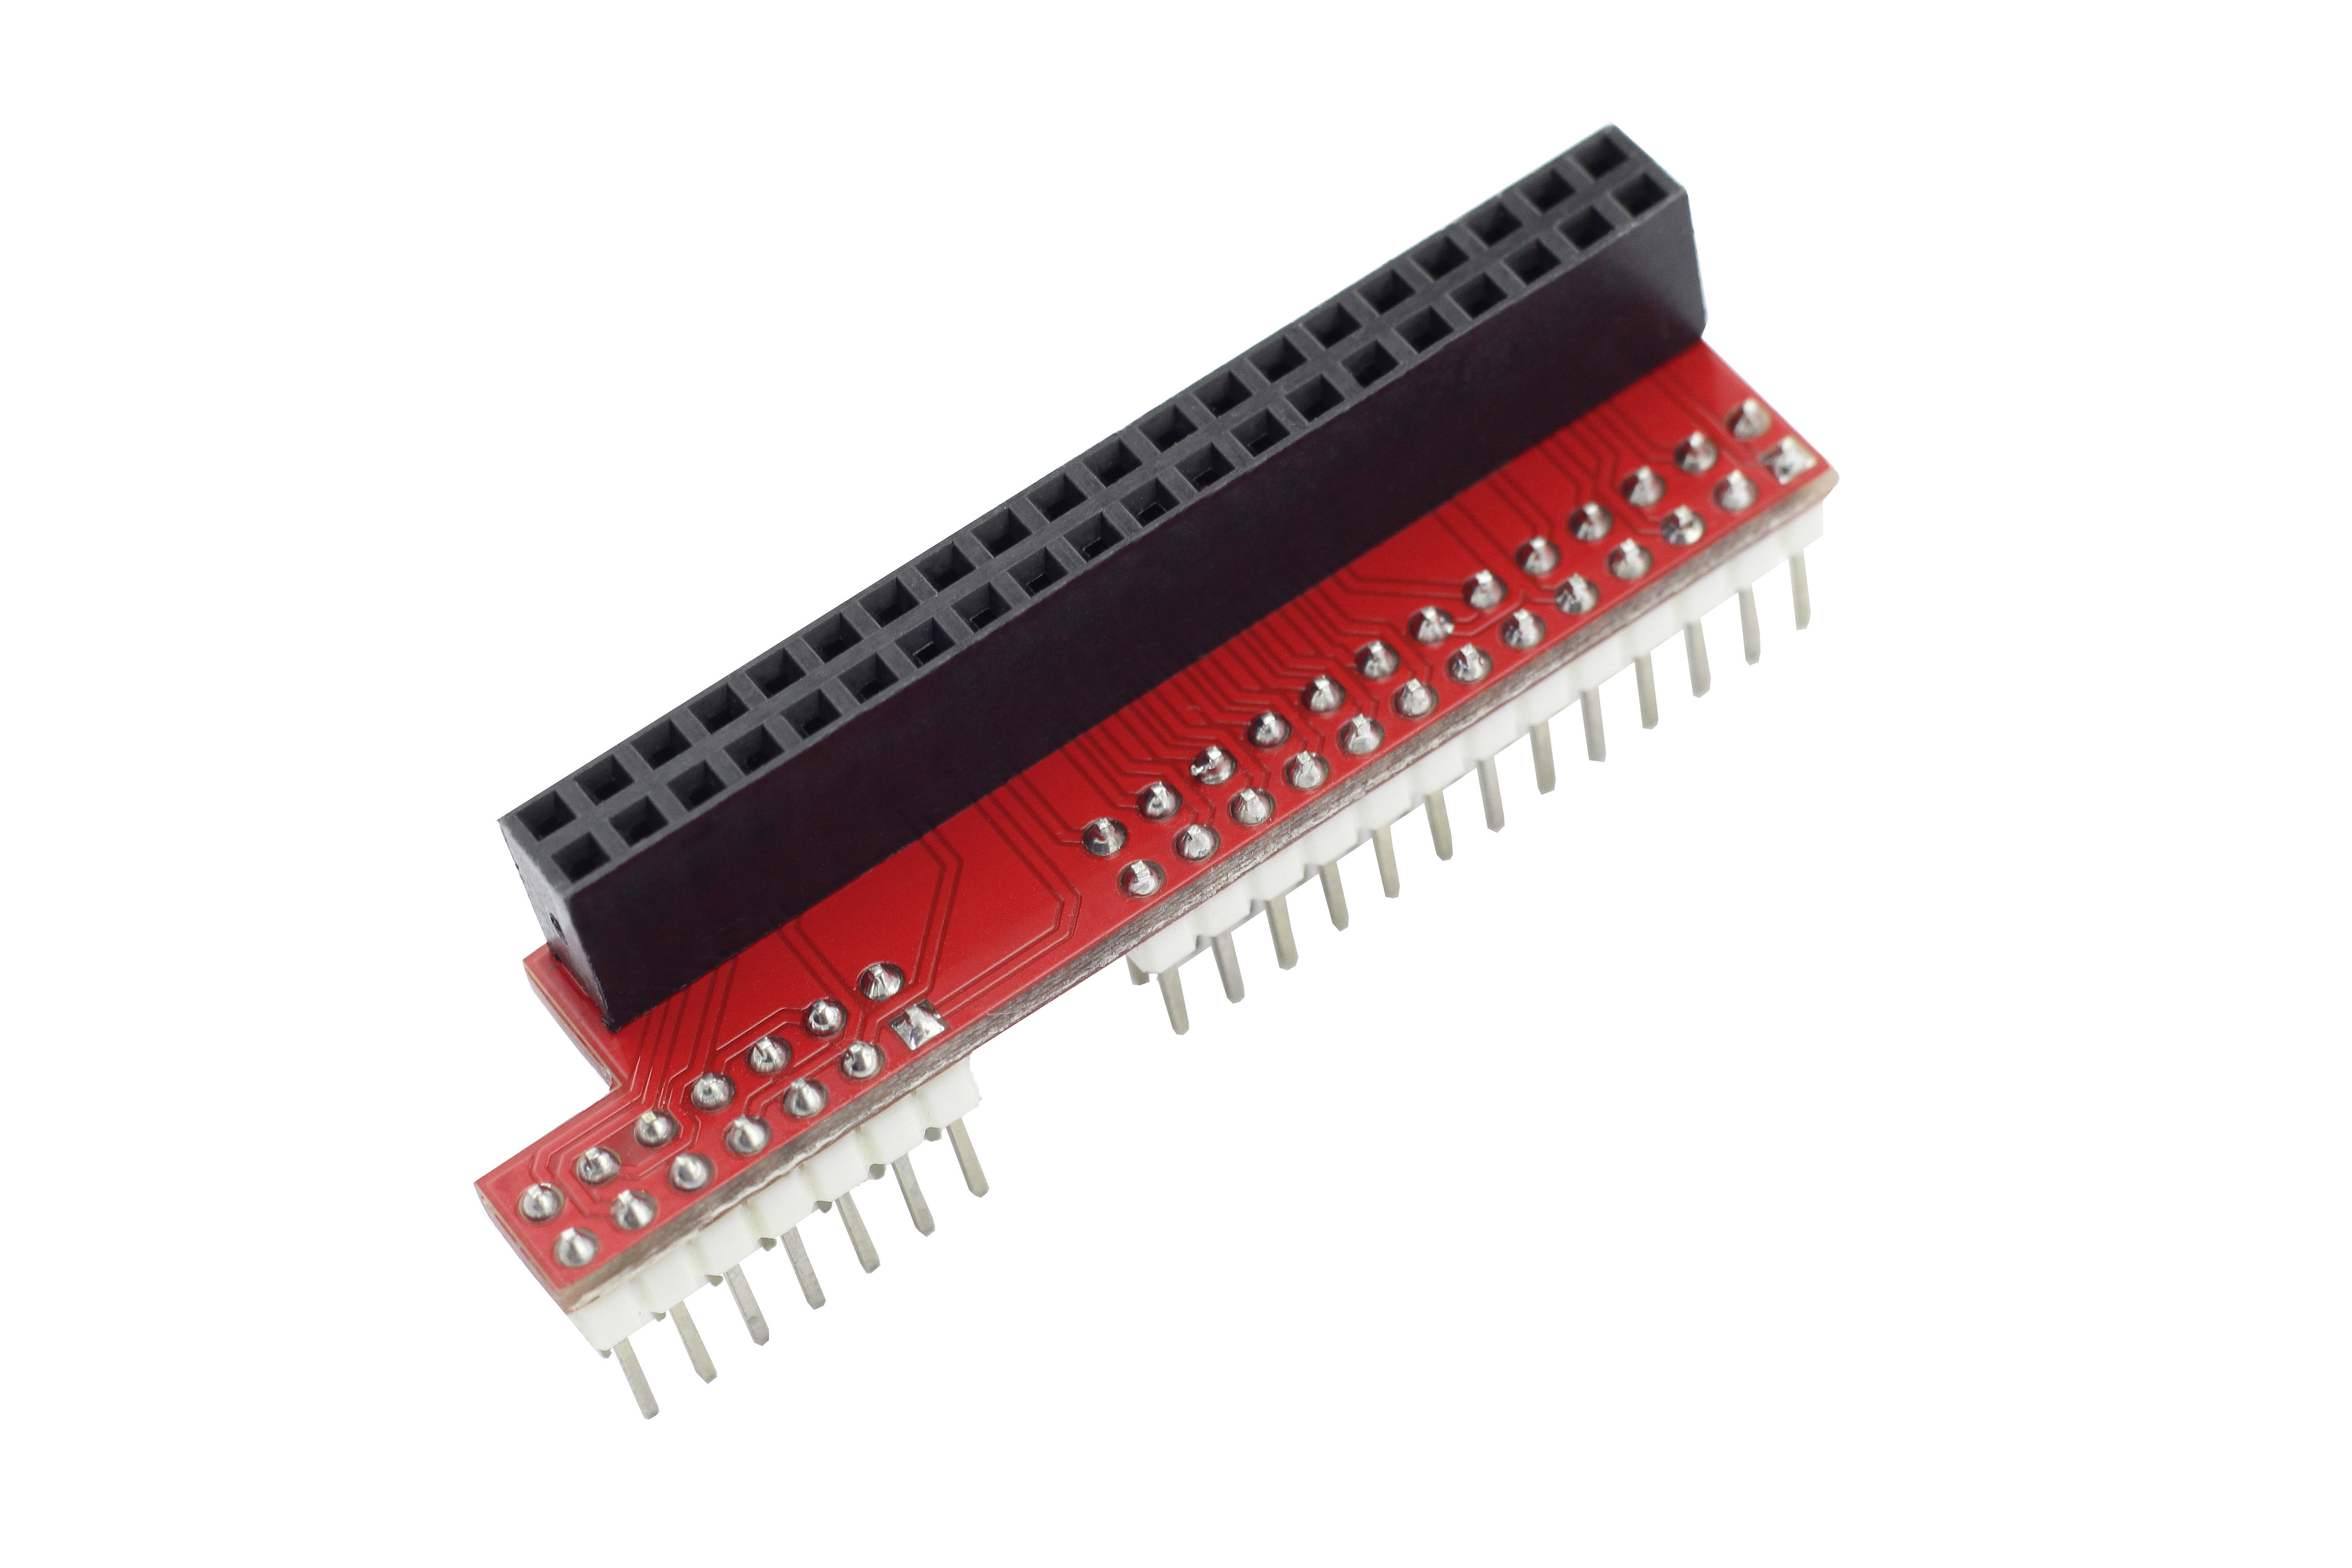 Raspberry Pi A+&B+&2 40pin to 26pin GPIO Board